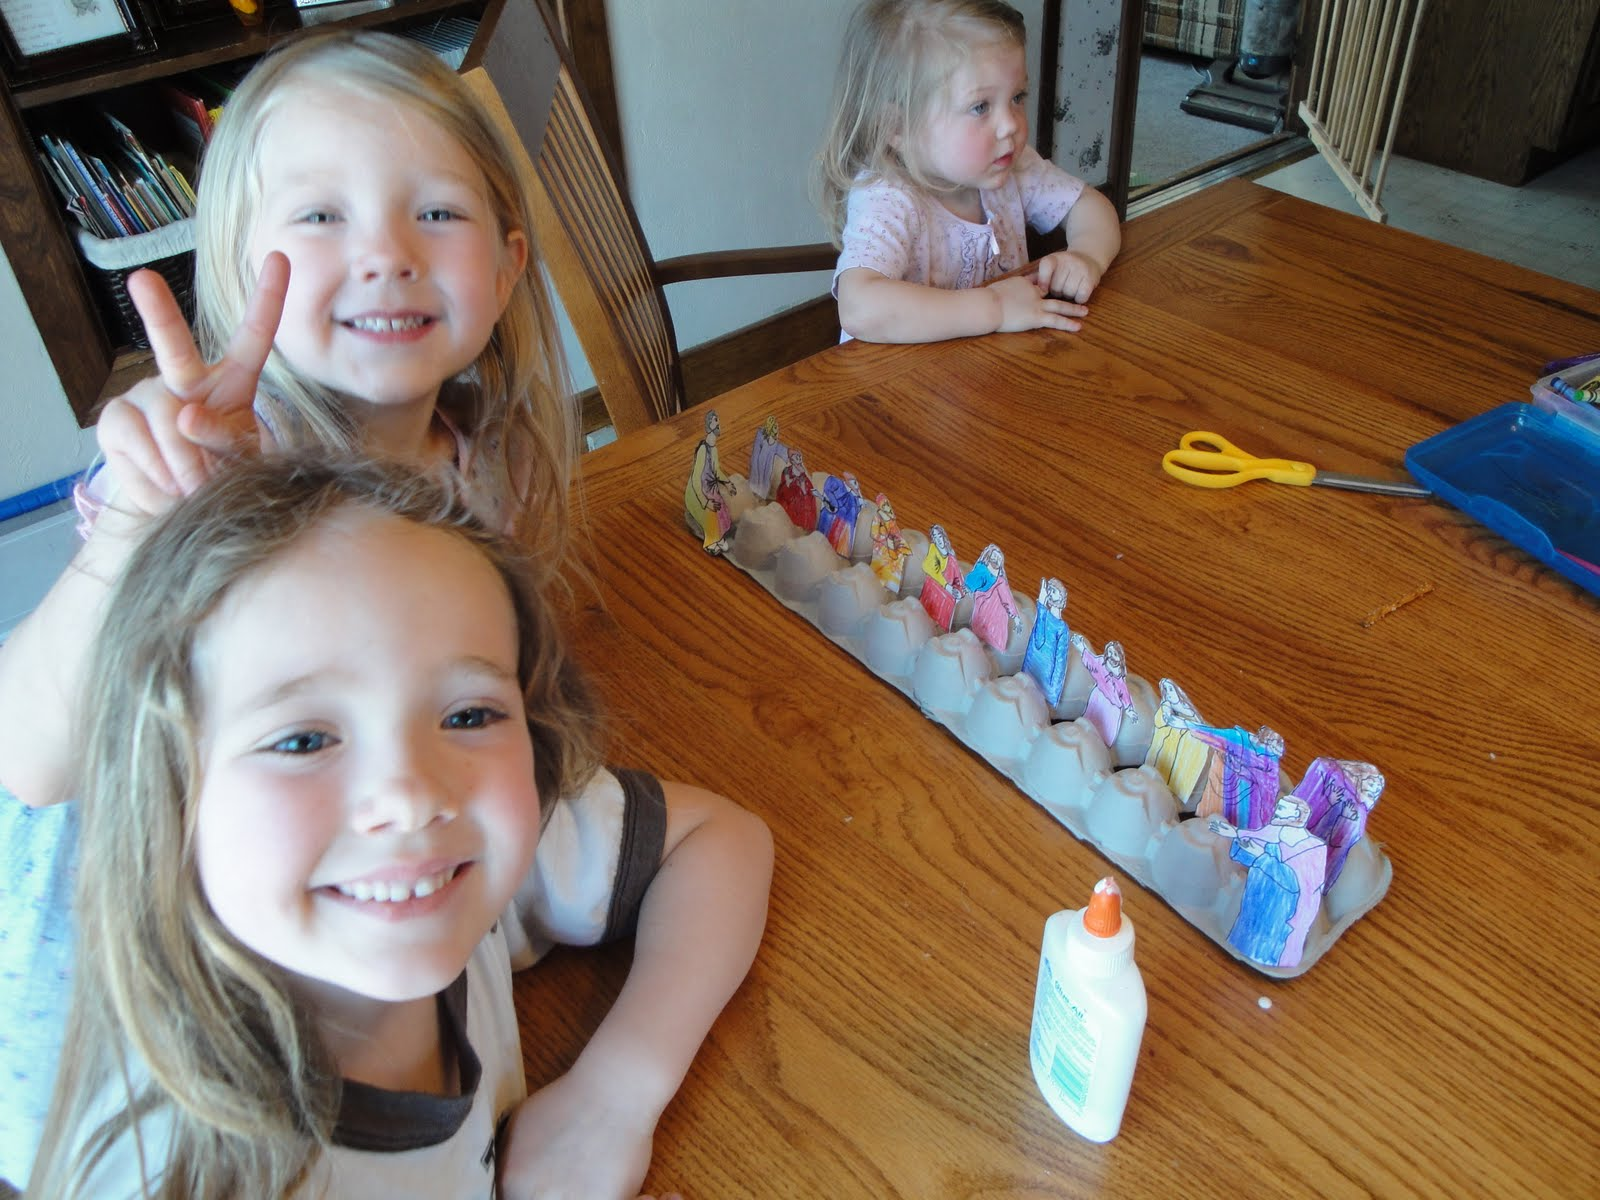 For Our Holy Thursday Art Class We Created A Last Supper Craft Using The Template From Catholic Icings Blog And Two Egg Cartons Kids Each Colored